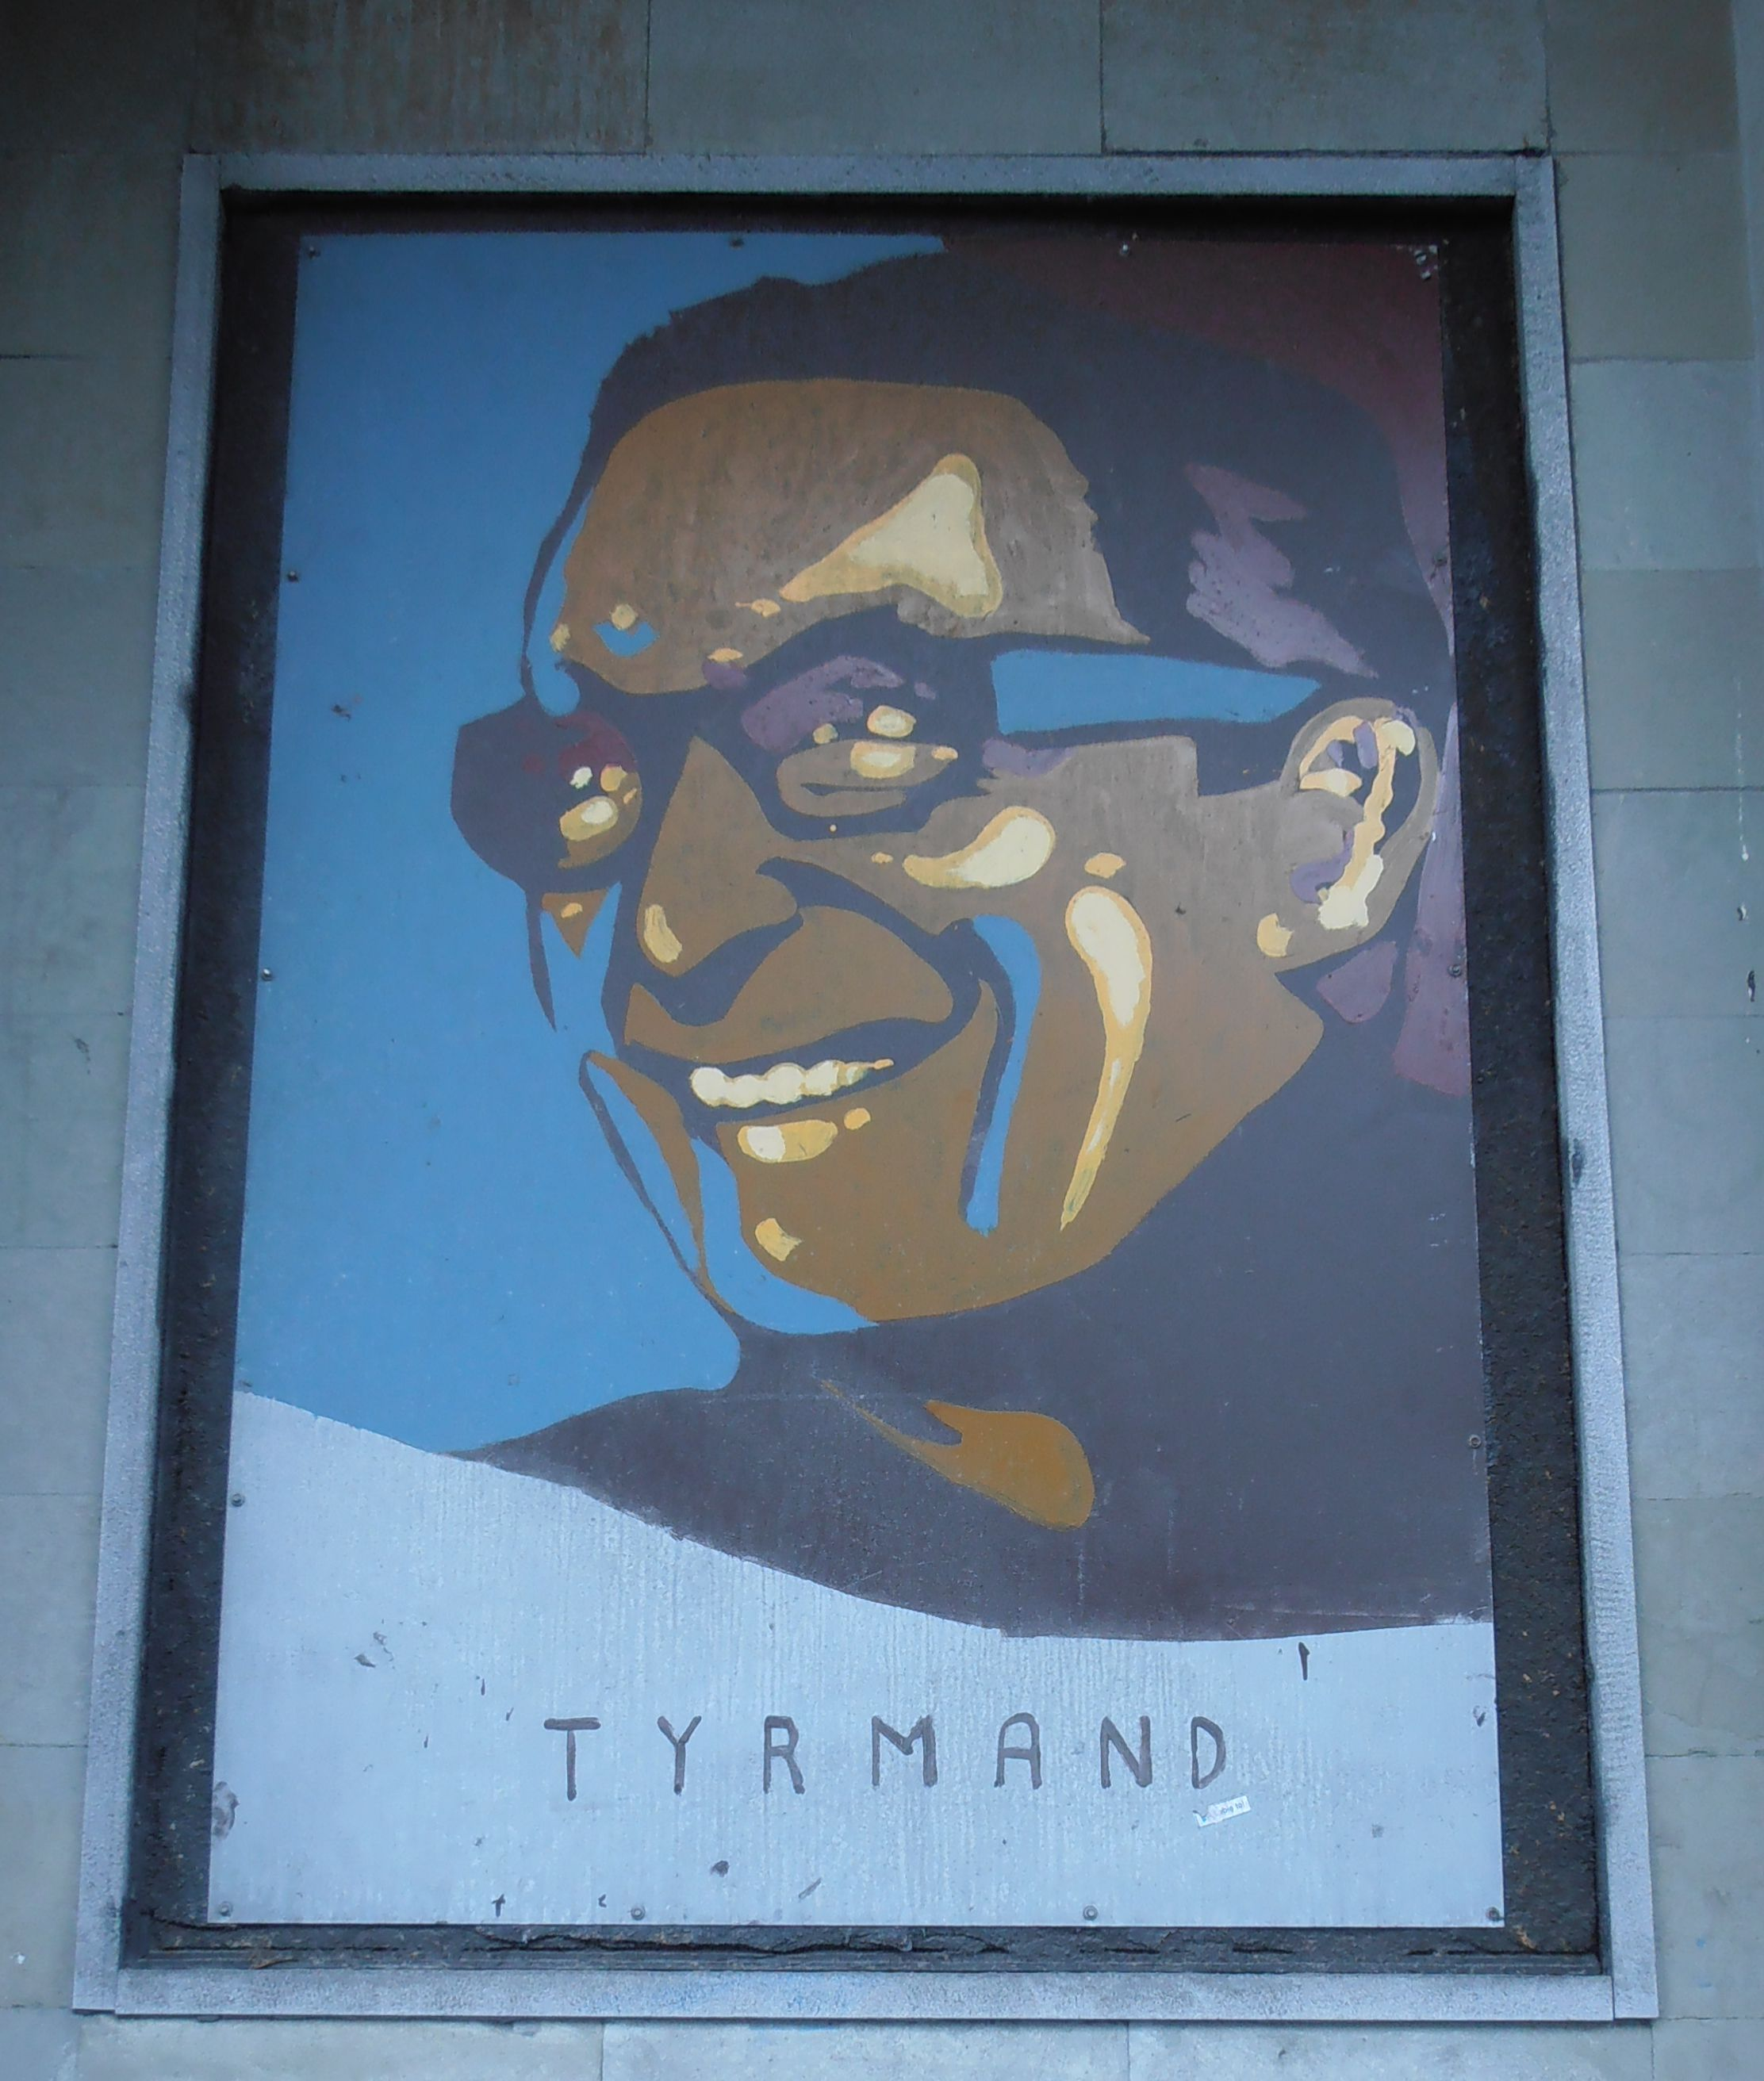 Leopold Tyrmand